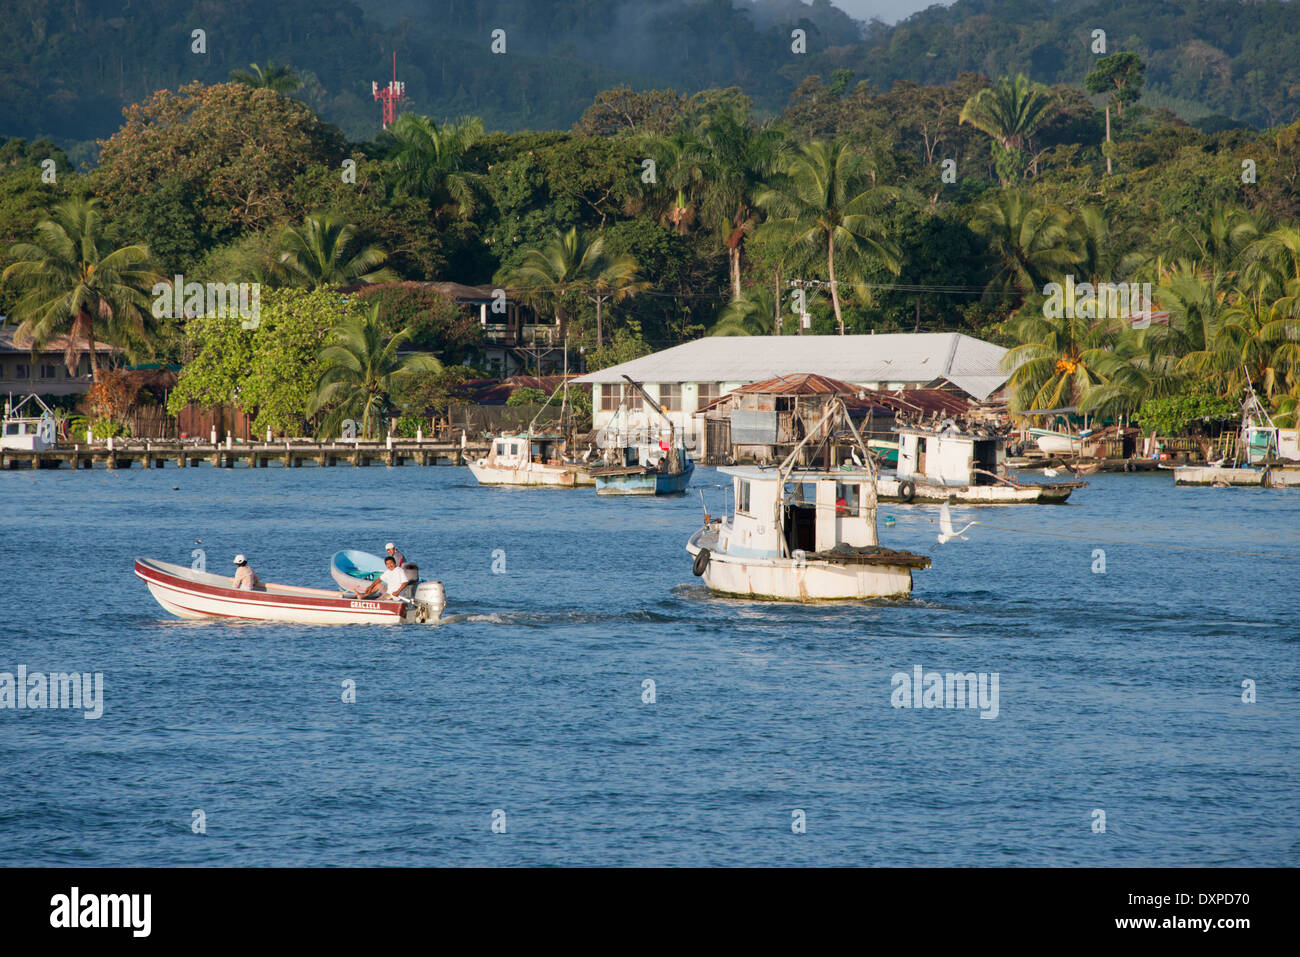 Guatemala, Department of Izabal, Livingston. Port town located at the mouth of the Rio Dulce at the Gulf of Honduras. - Stock Image